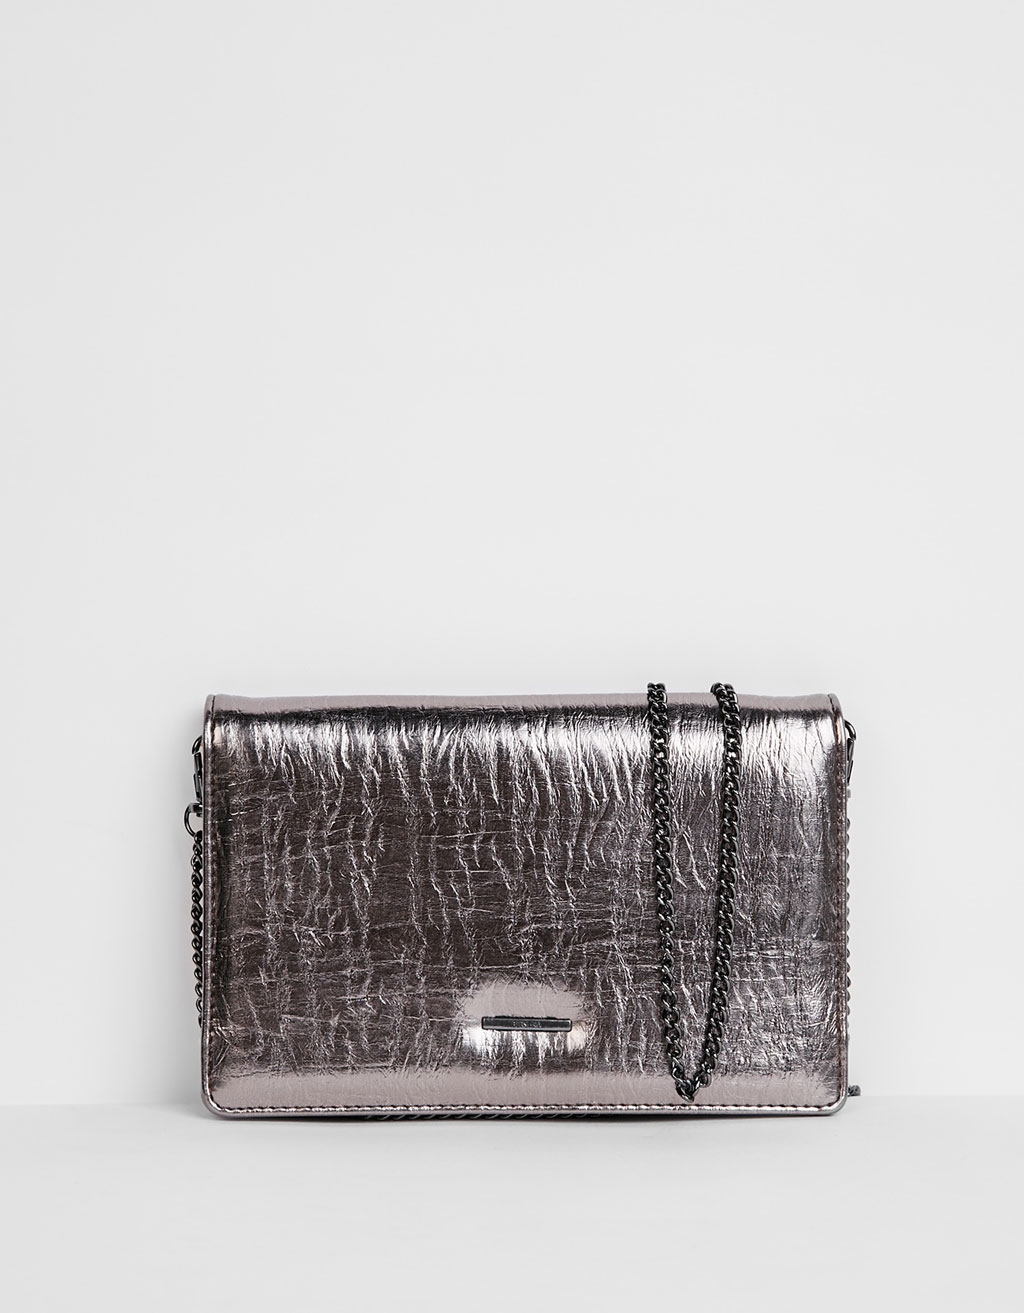 Metallic chain clutch purse